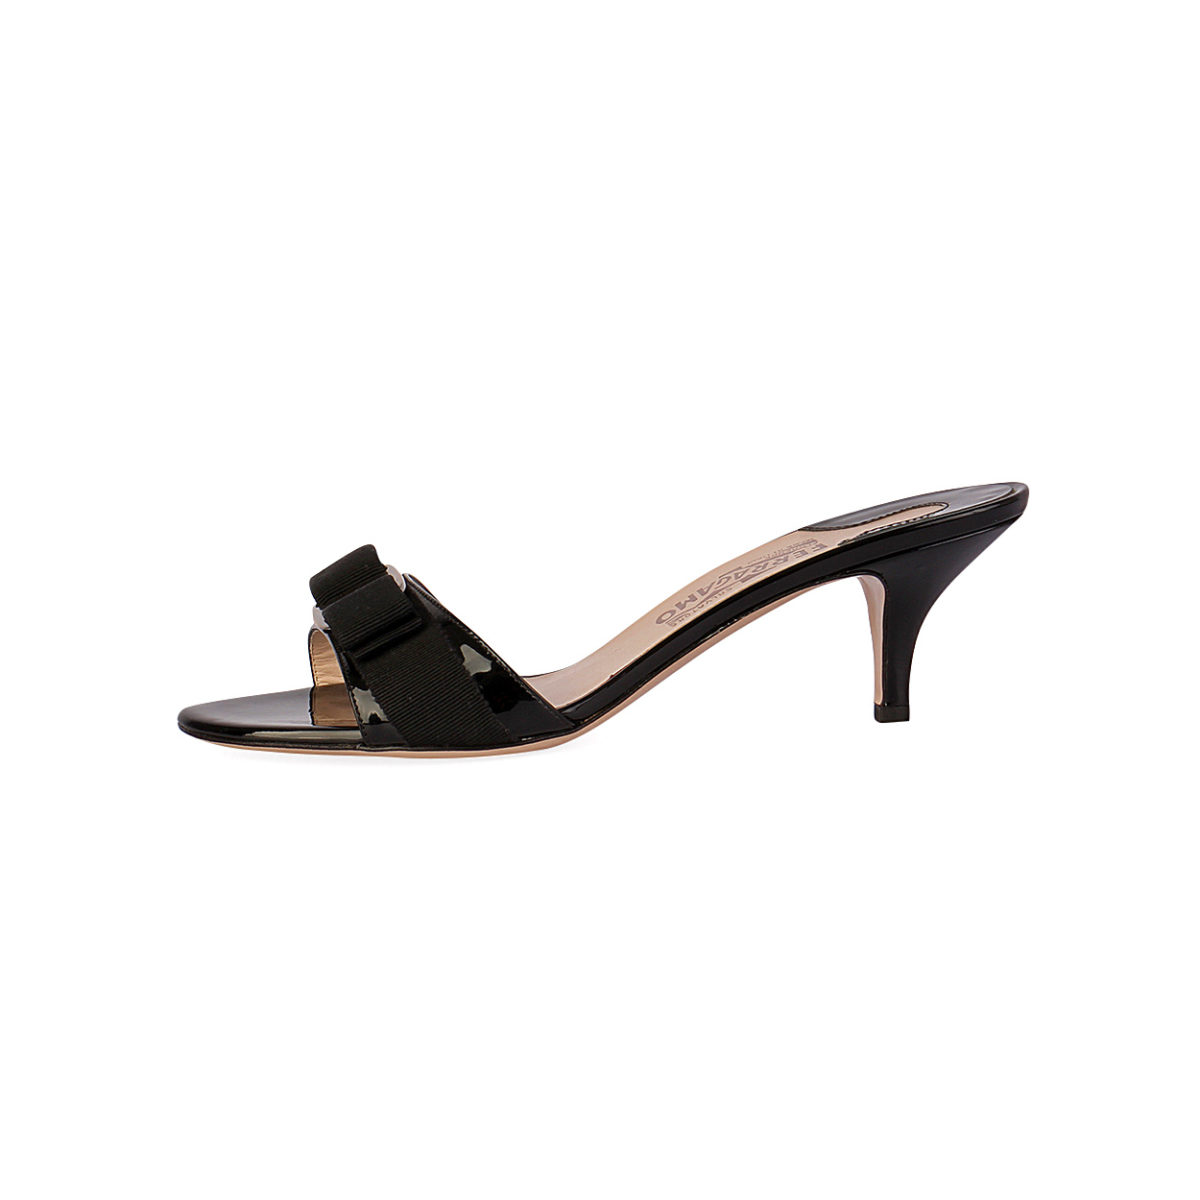 8051bc778 SALVATORE FERRAGAMO Patent Glory Kitten Heel Sandals Black - S  39 ...